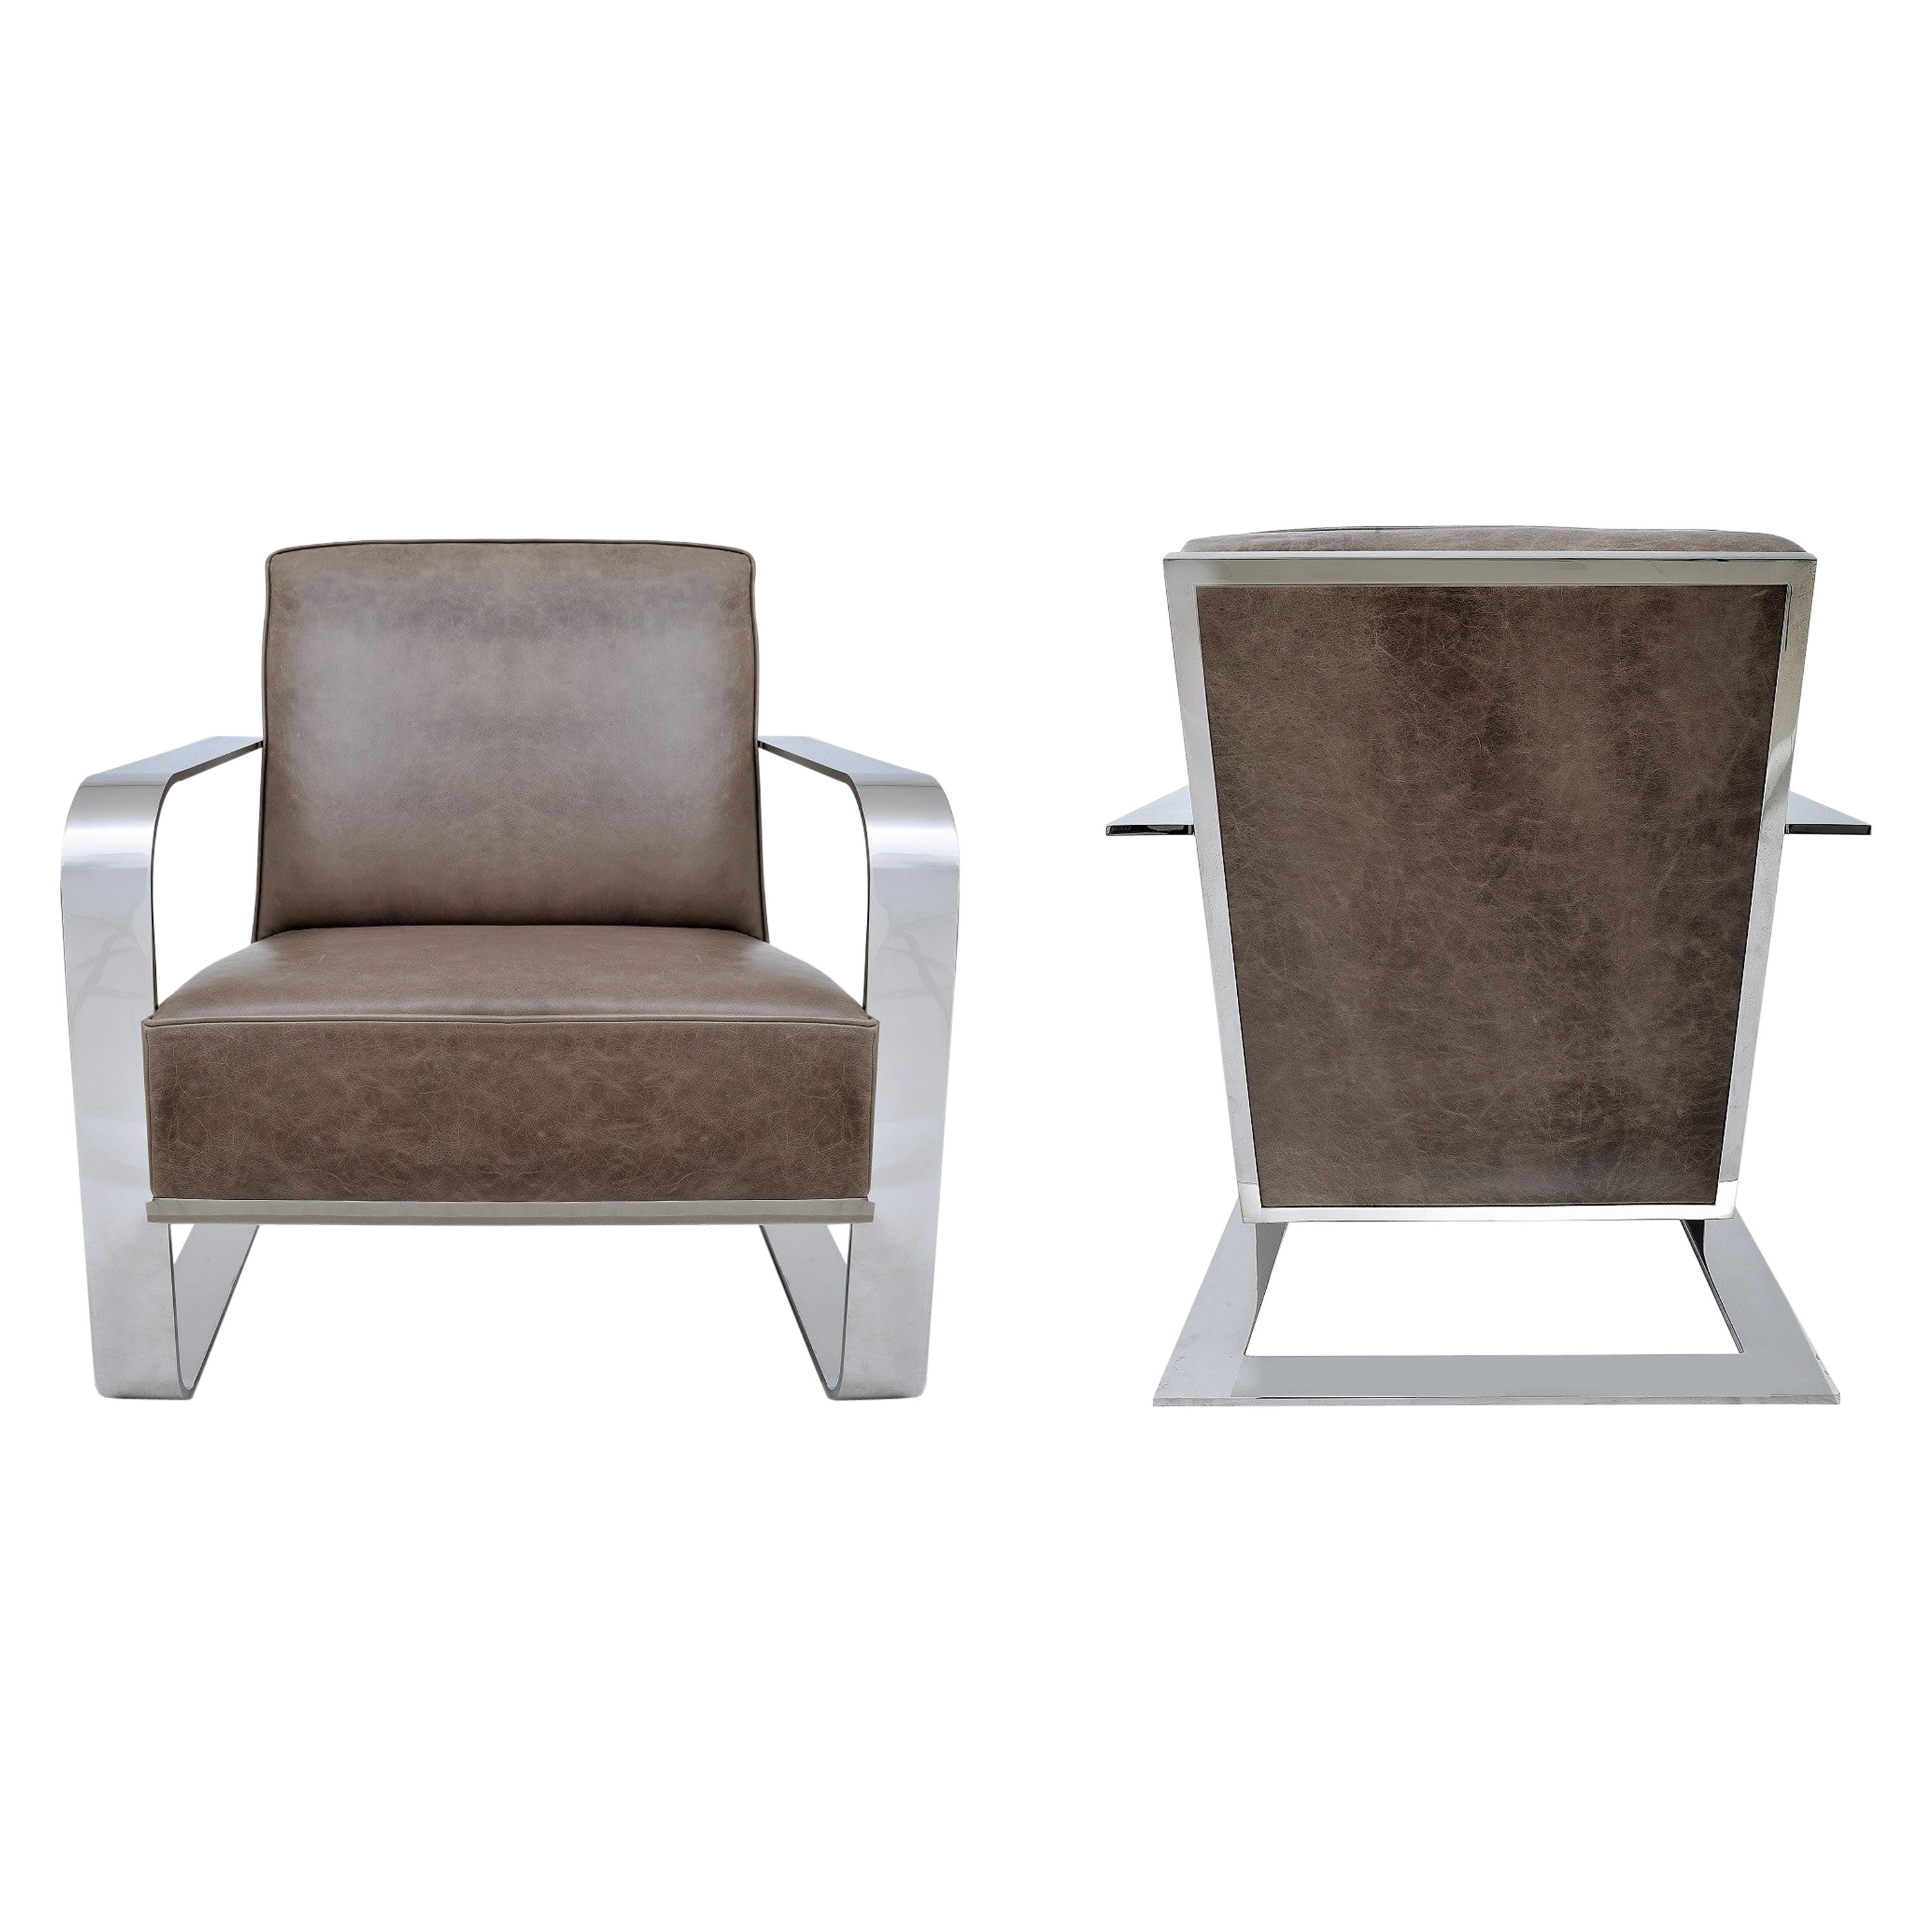 Marvelous Antique And Vintage Wingback Chairs 1 011 For Sale At 1Stdibs Cjindustries Chair Design For Home Cjindustriesco